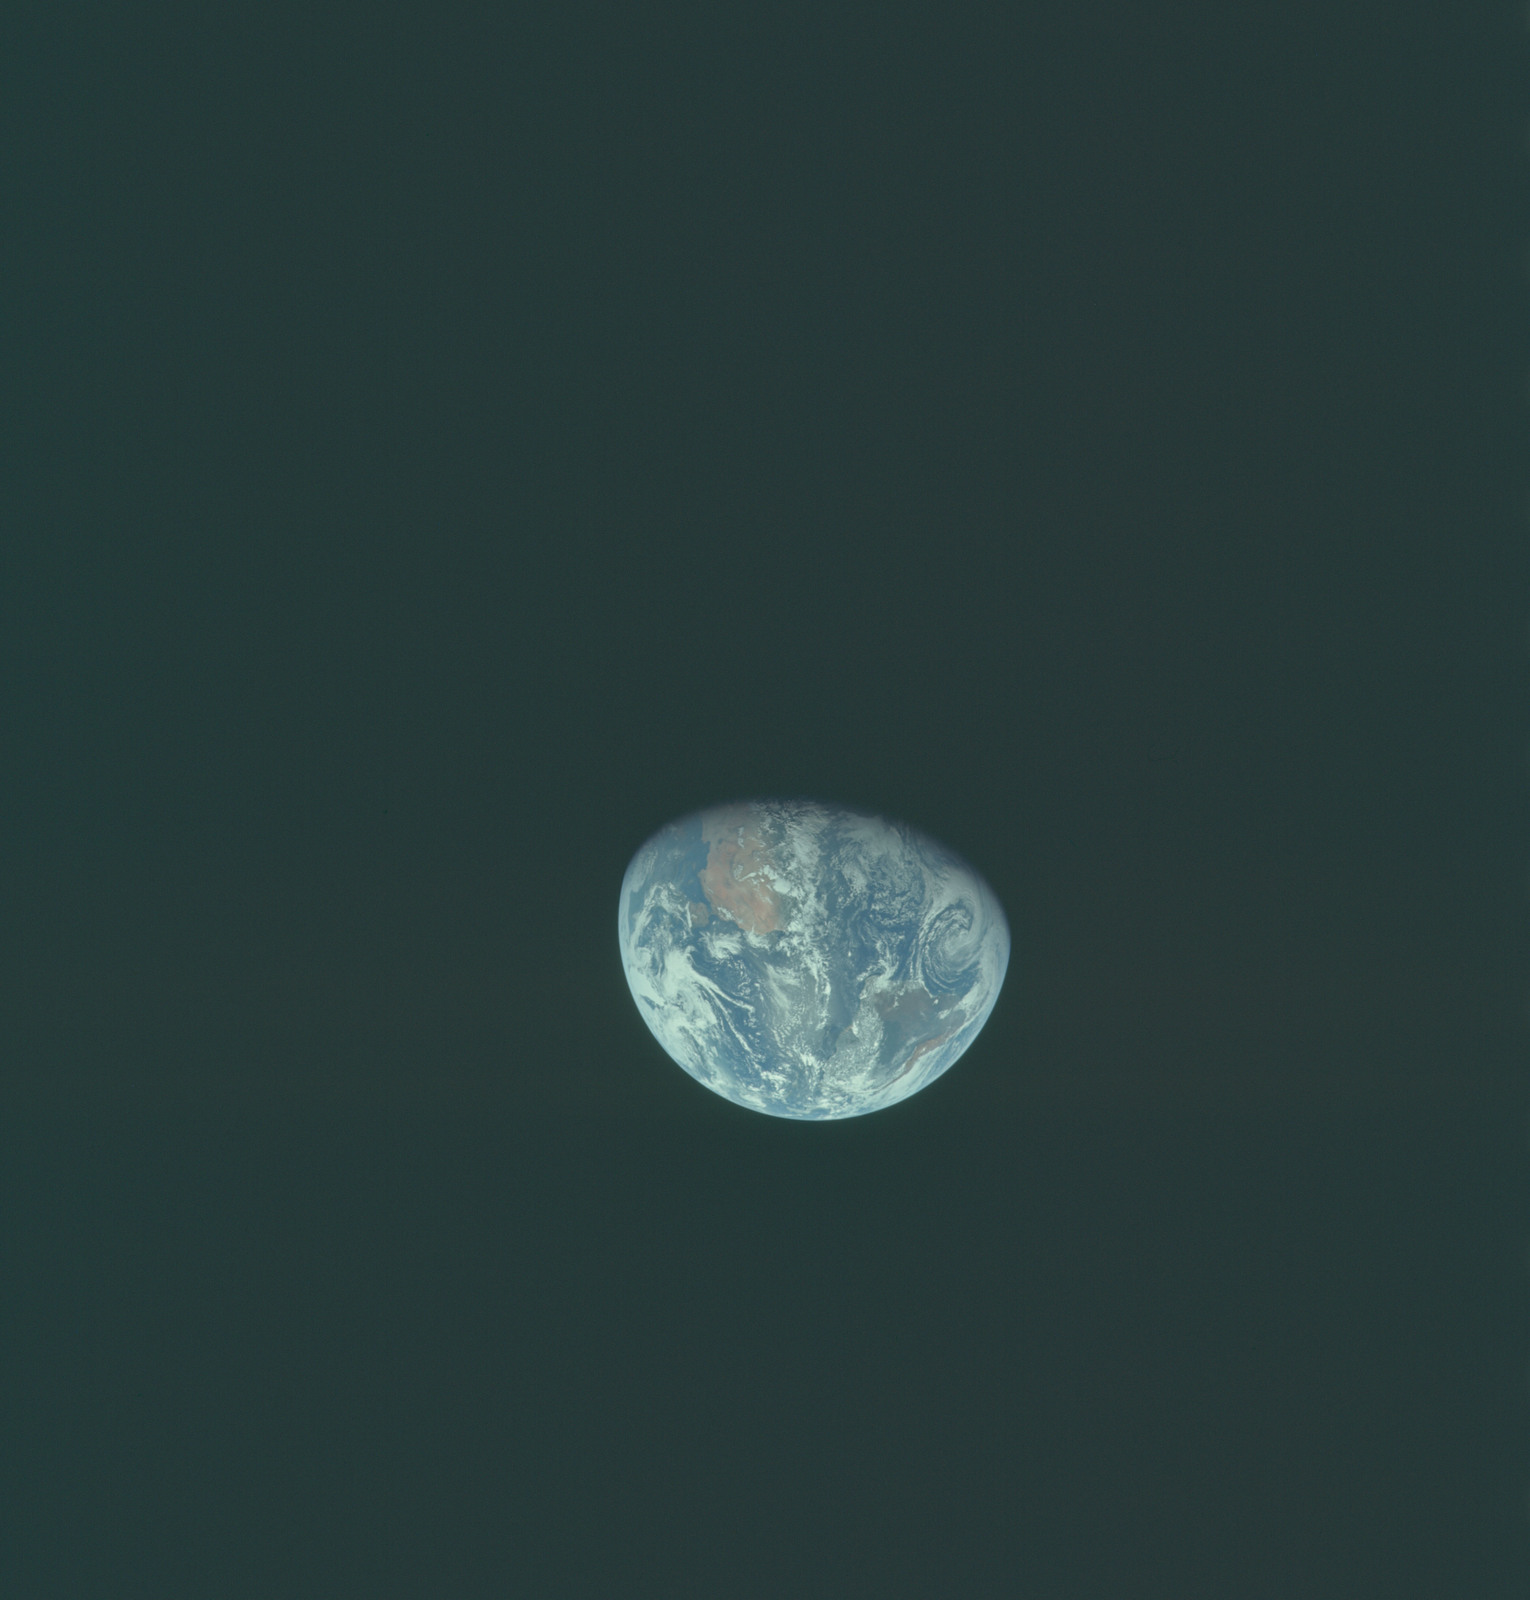 AS11-36-5356 - Apollo 11 - Apollo 11 Mission image - Earth view over Africa